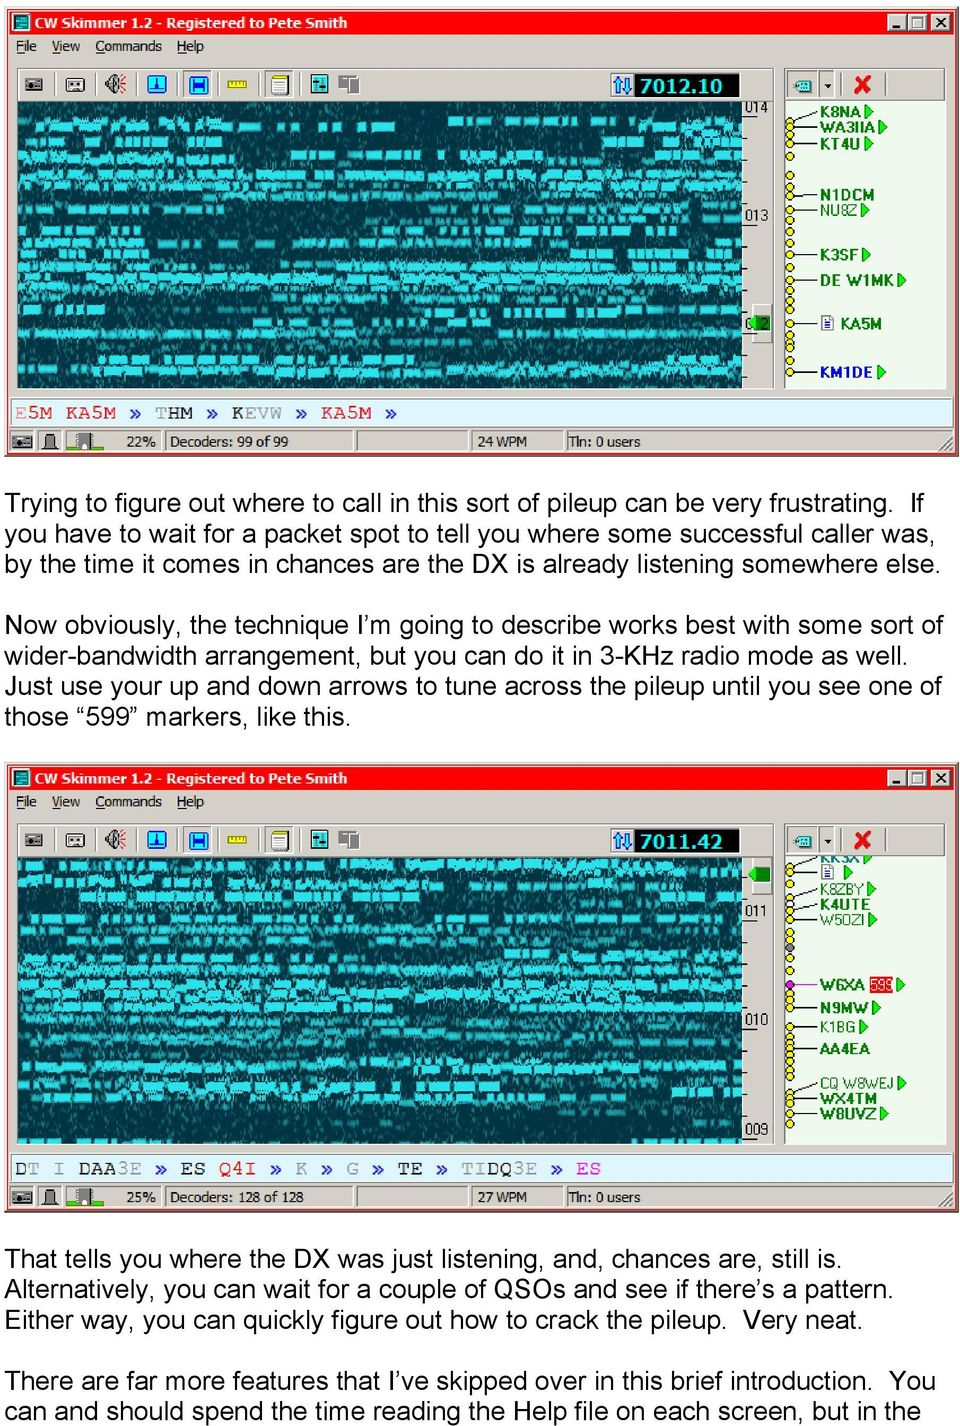 Now obviously, the technique I m going to describe works best with some sort of wider-bandwidth arrangement, but you can do it in 3-KHz radio mode as well.